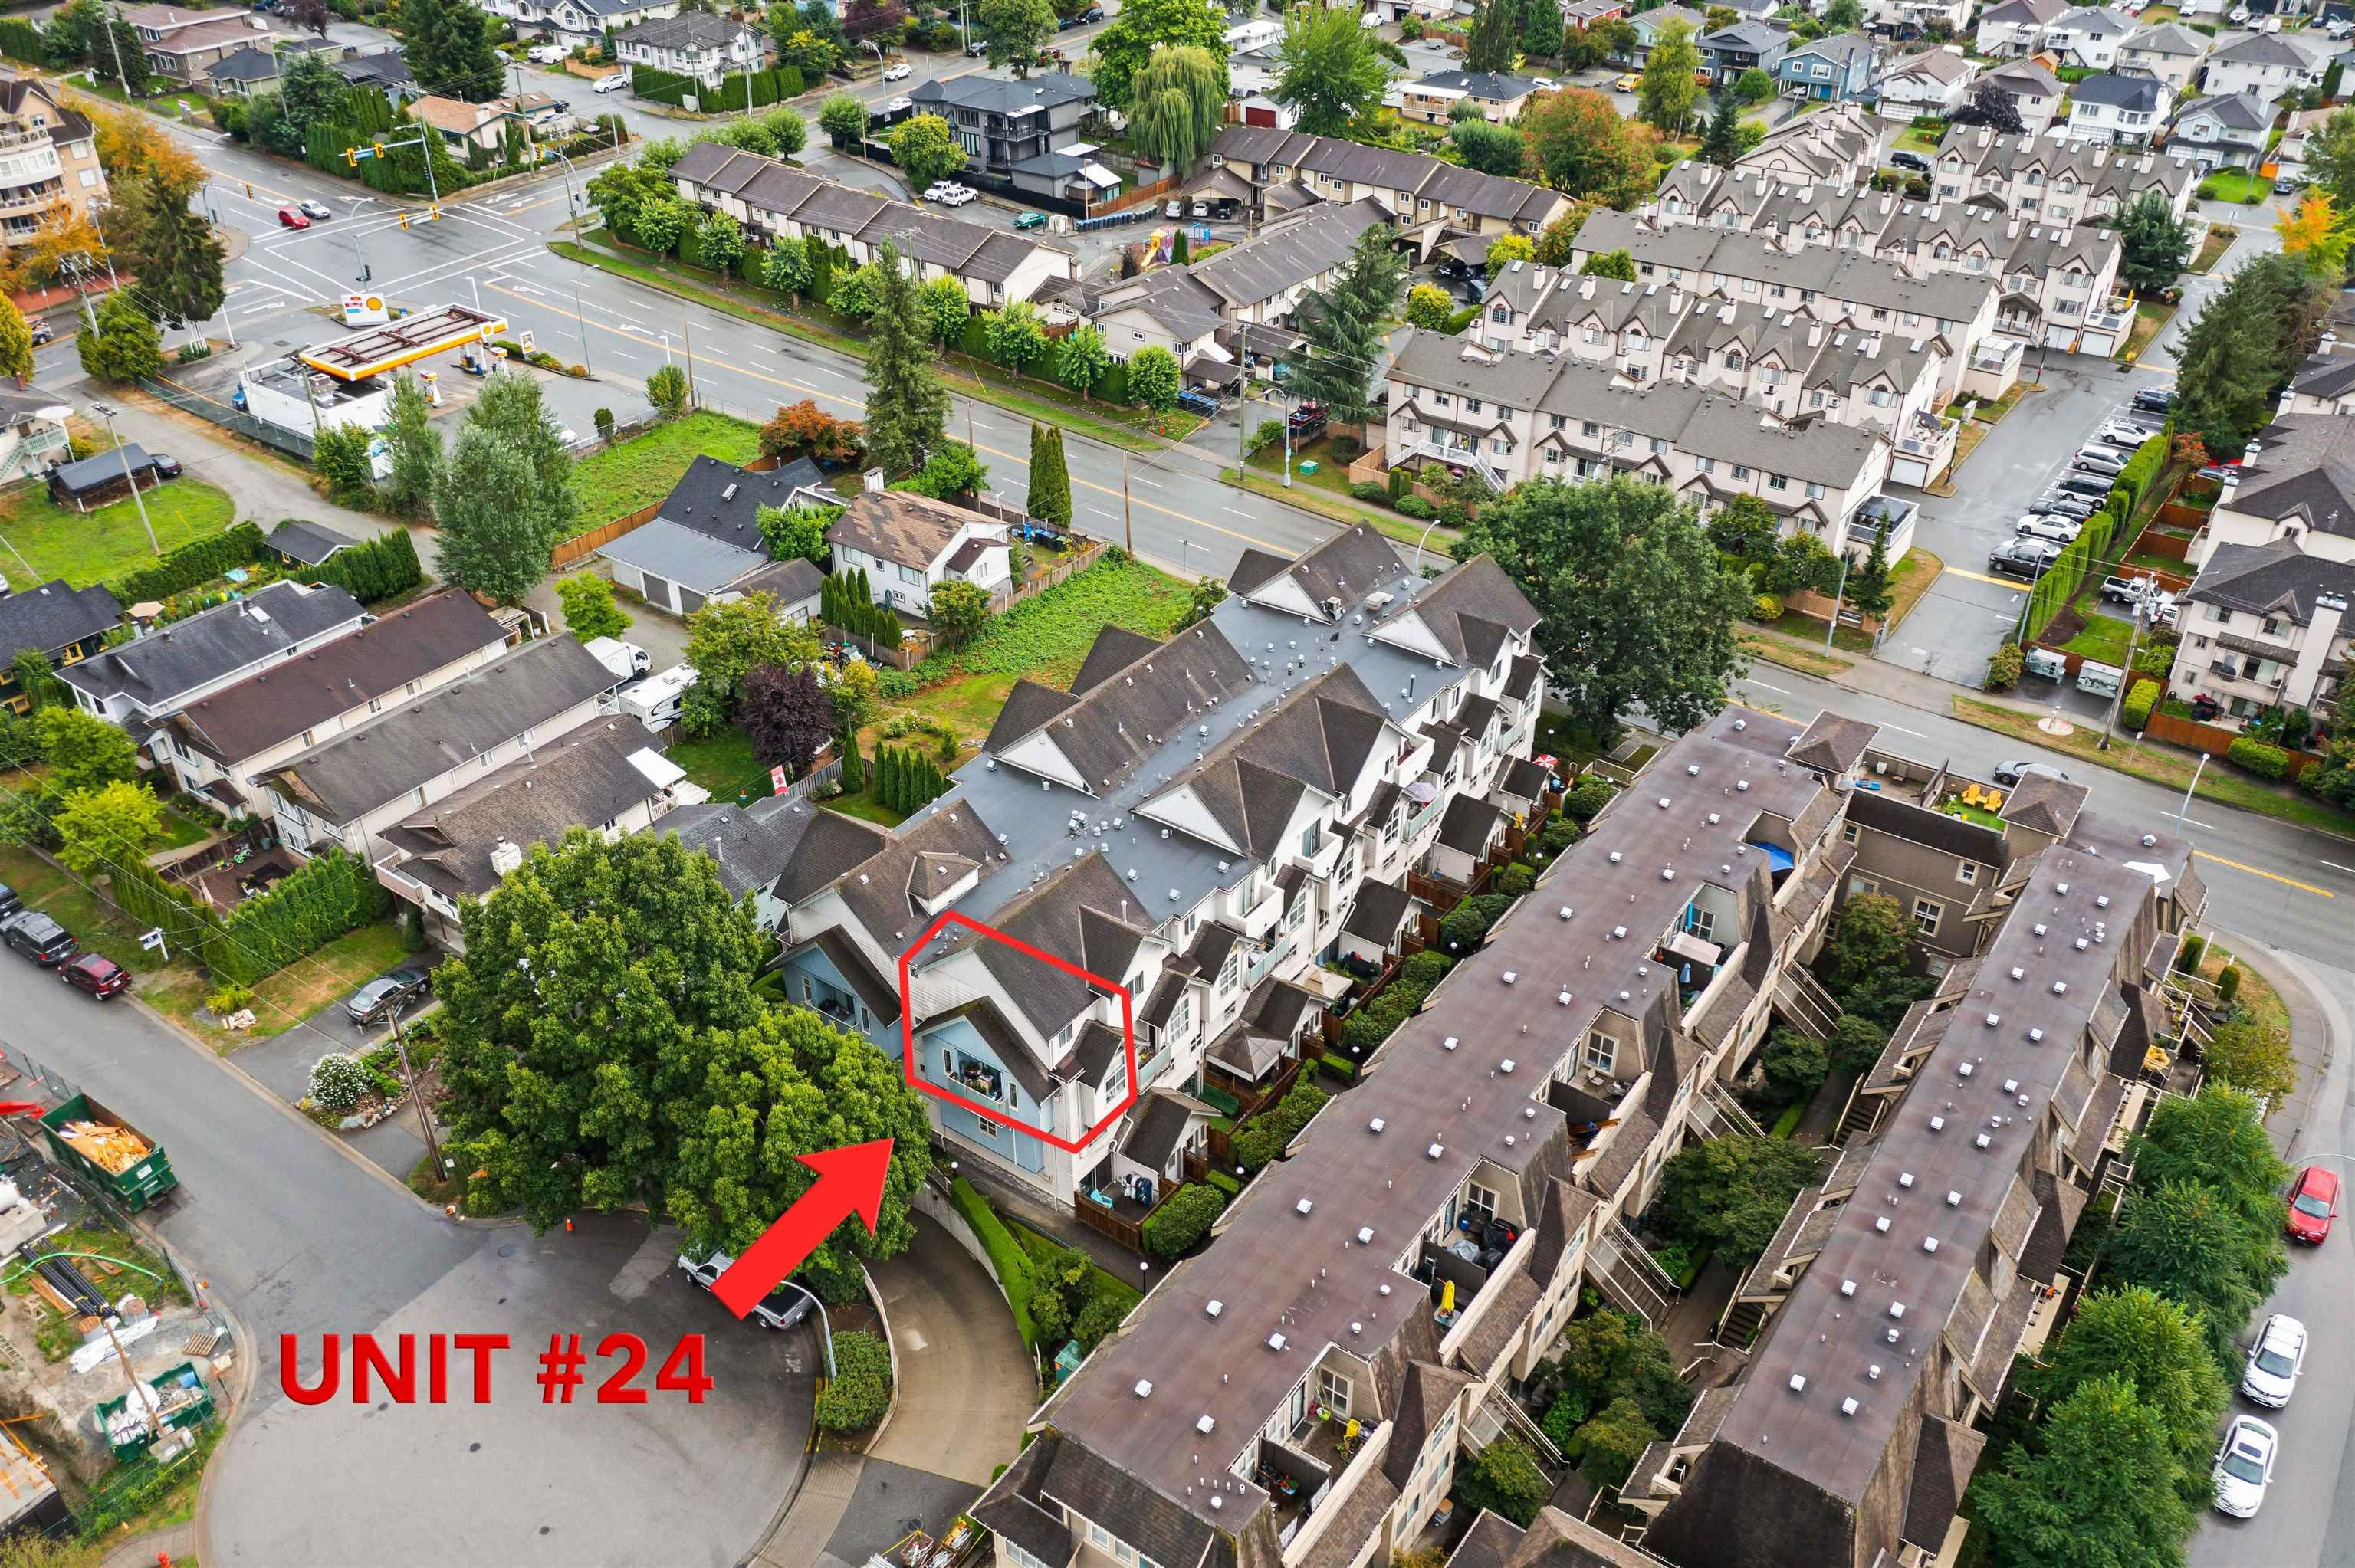 Main Photo: 24 2378 RINDALL Avenue in Port Coquitlam: Central Pt Coquitlam Condo for sale : MLS®# R2613085